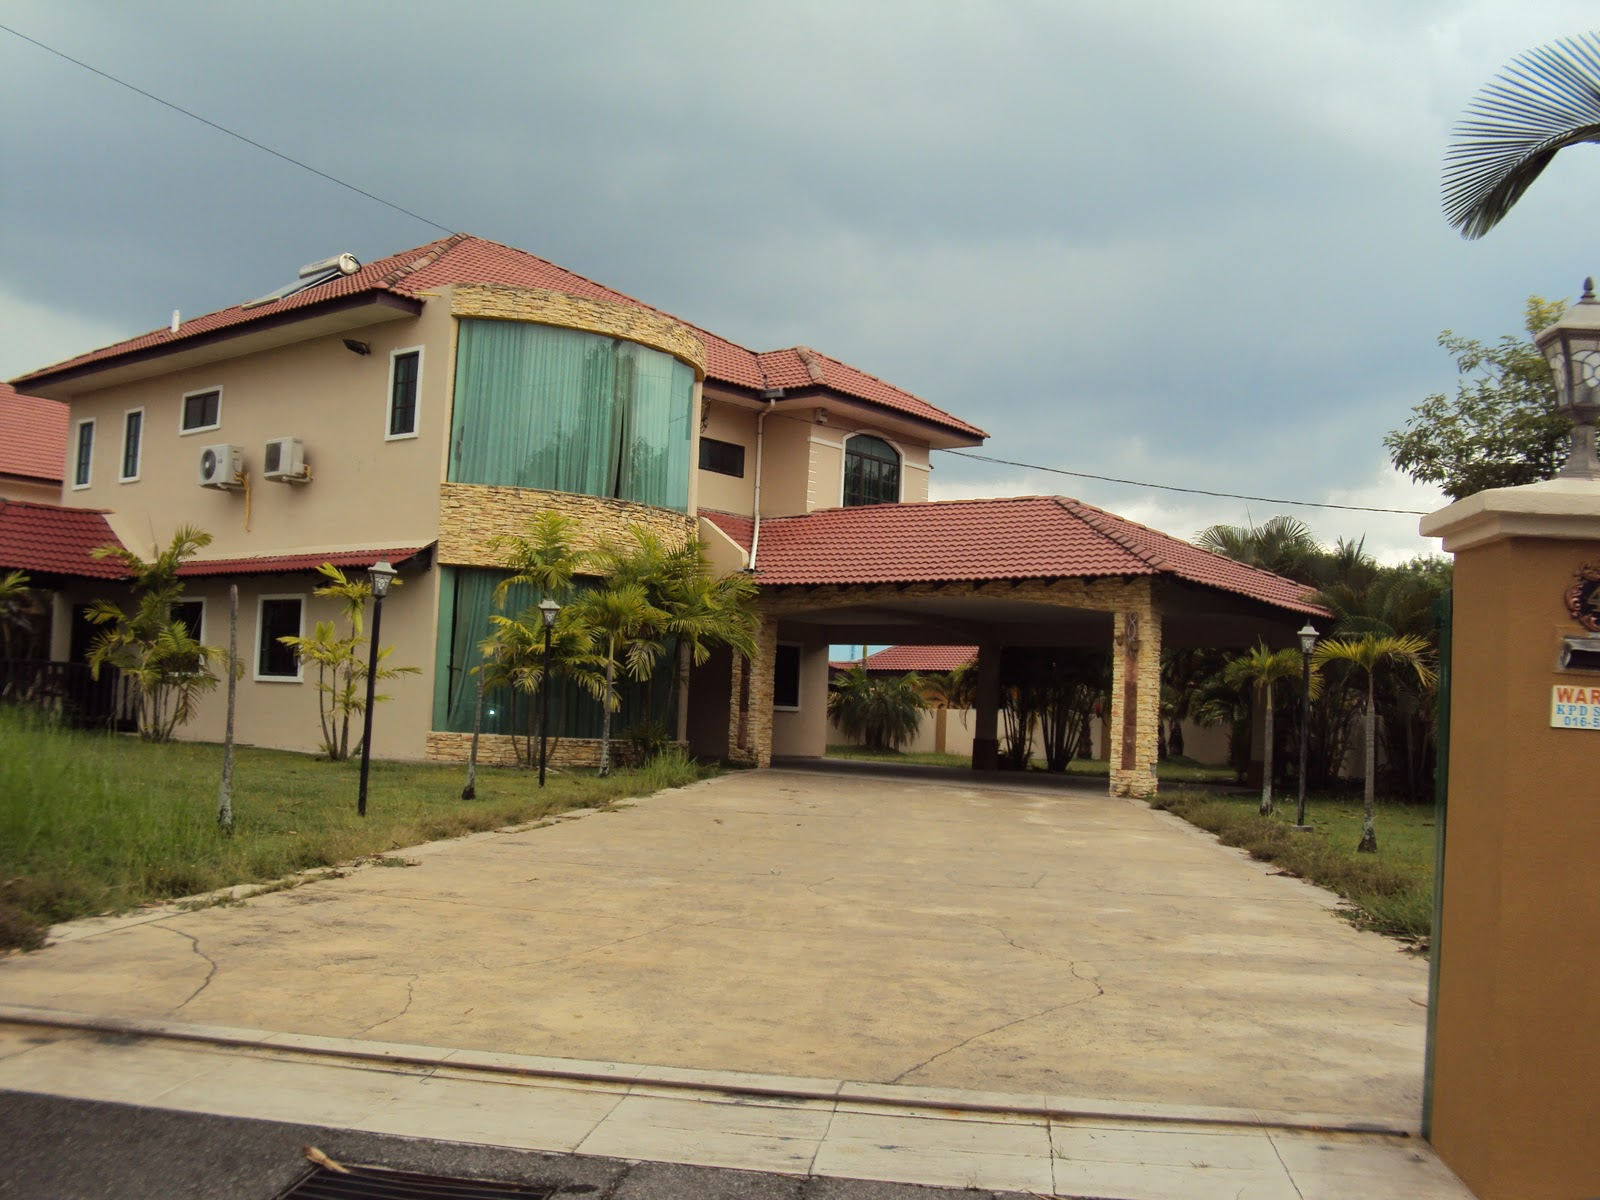 gladwin chat rooms Ipoh corner gated house for sale  the property has 5 rooms,  call the exclusive agent gladwin agilan at 012-5261000 for price and viewing.